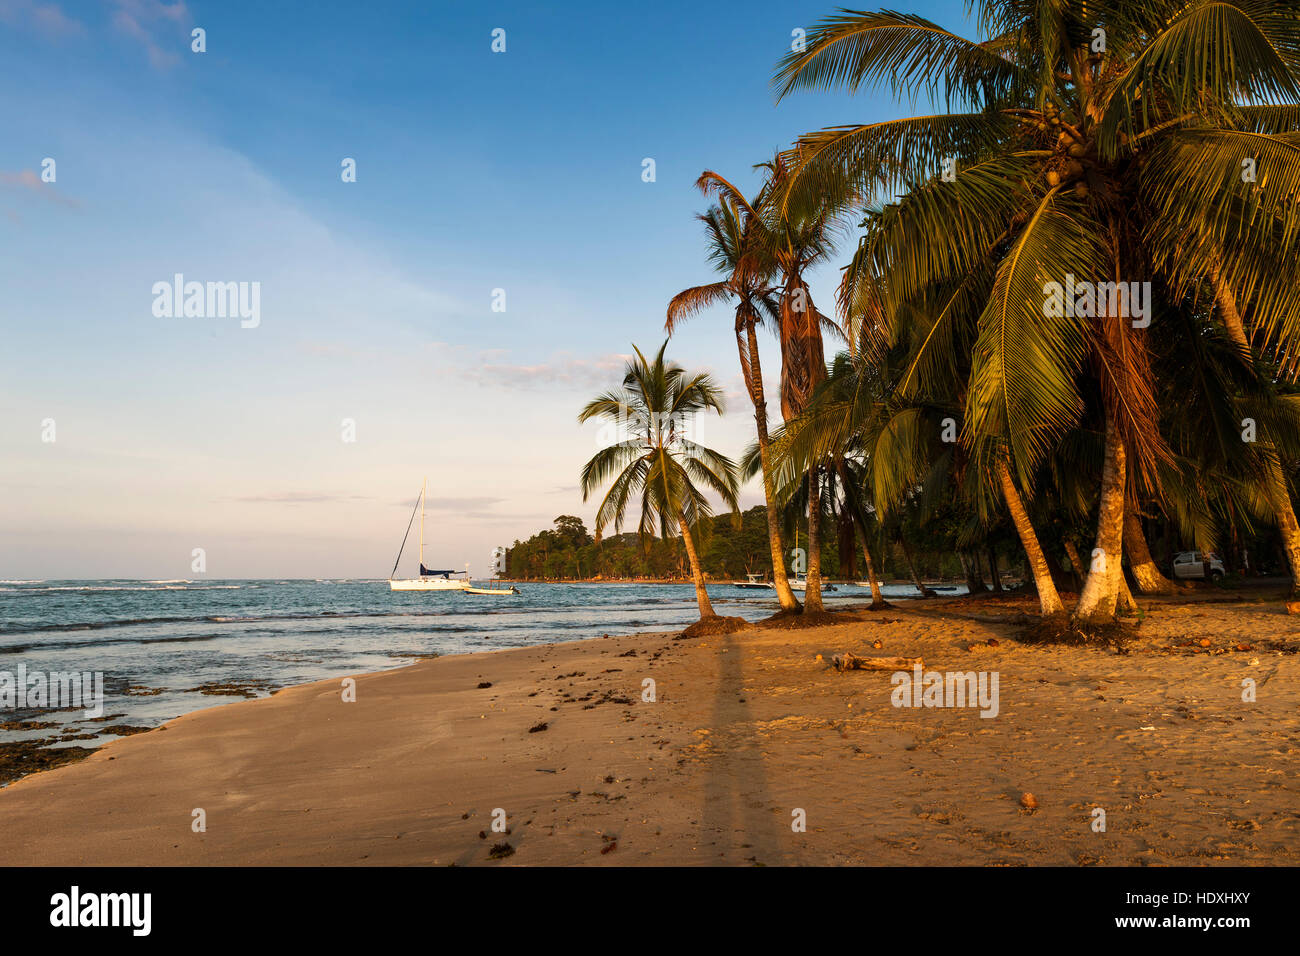 View of a beach with palm trees and boats in Puerto Viejo de Talamanca, Costa Rica, Central America Stock Photo